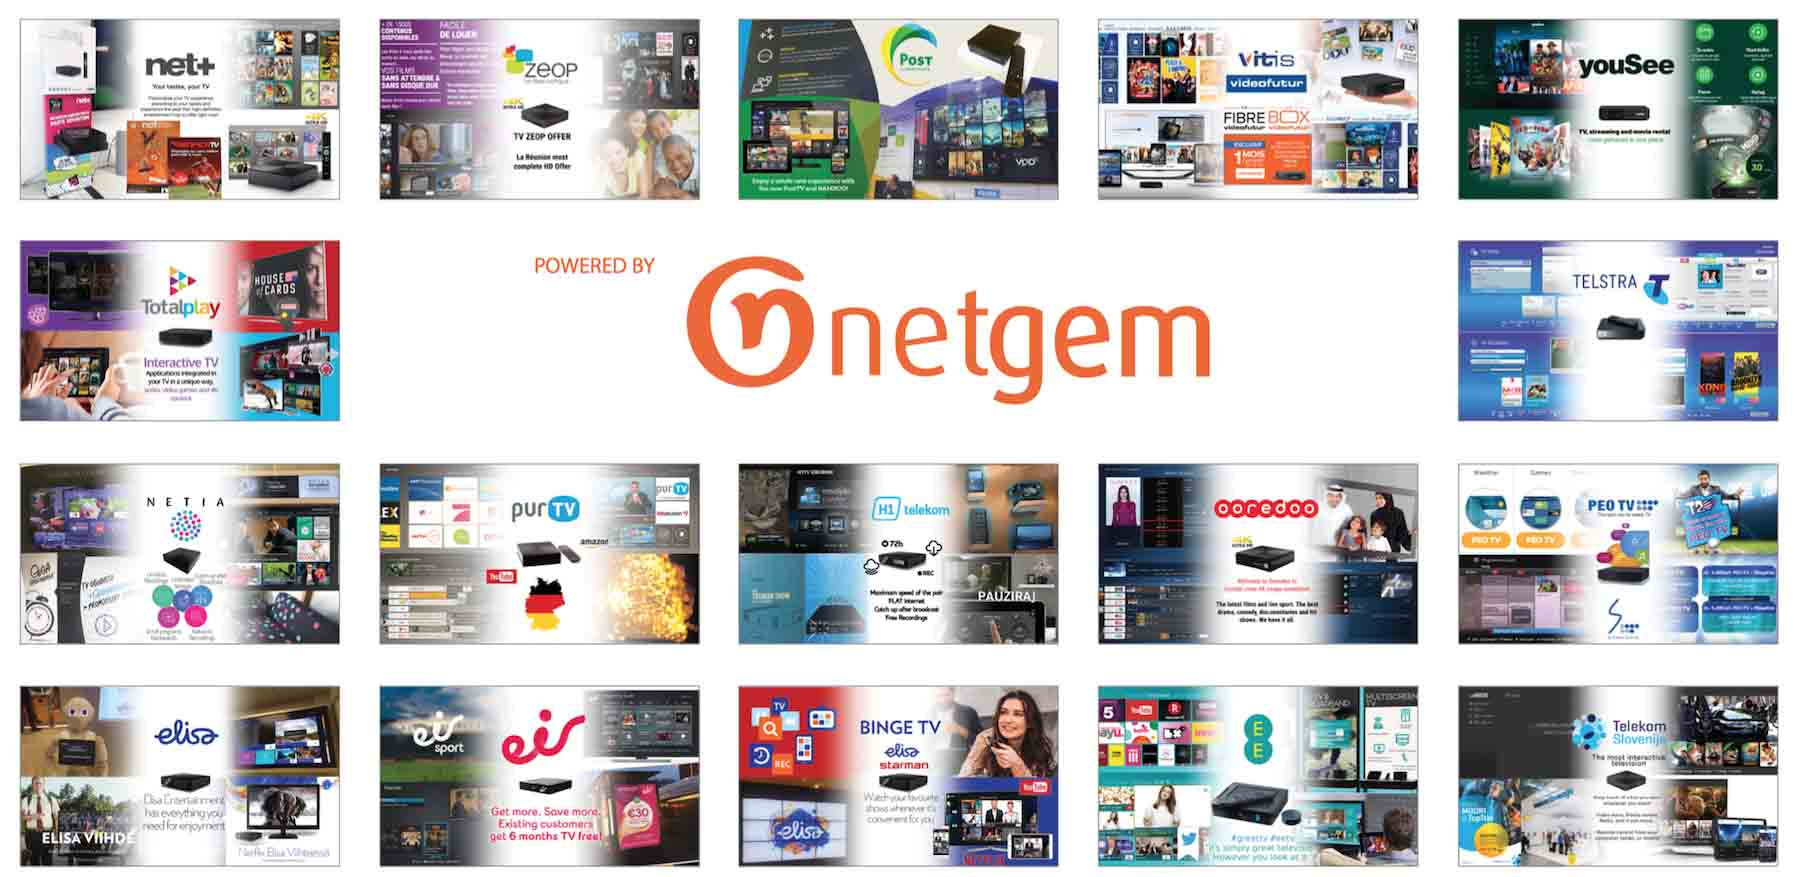 Netgem customers clients